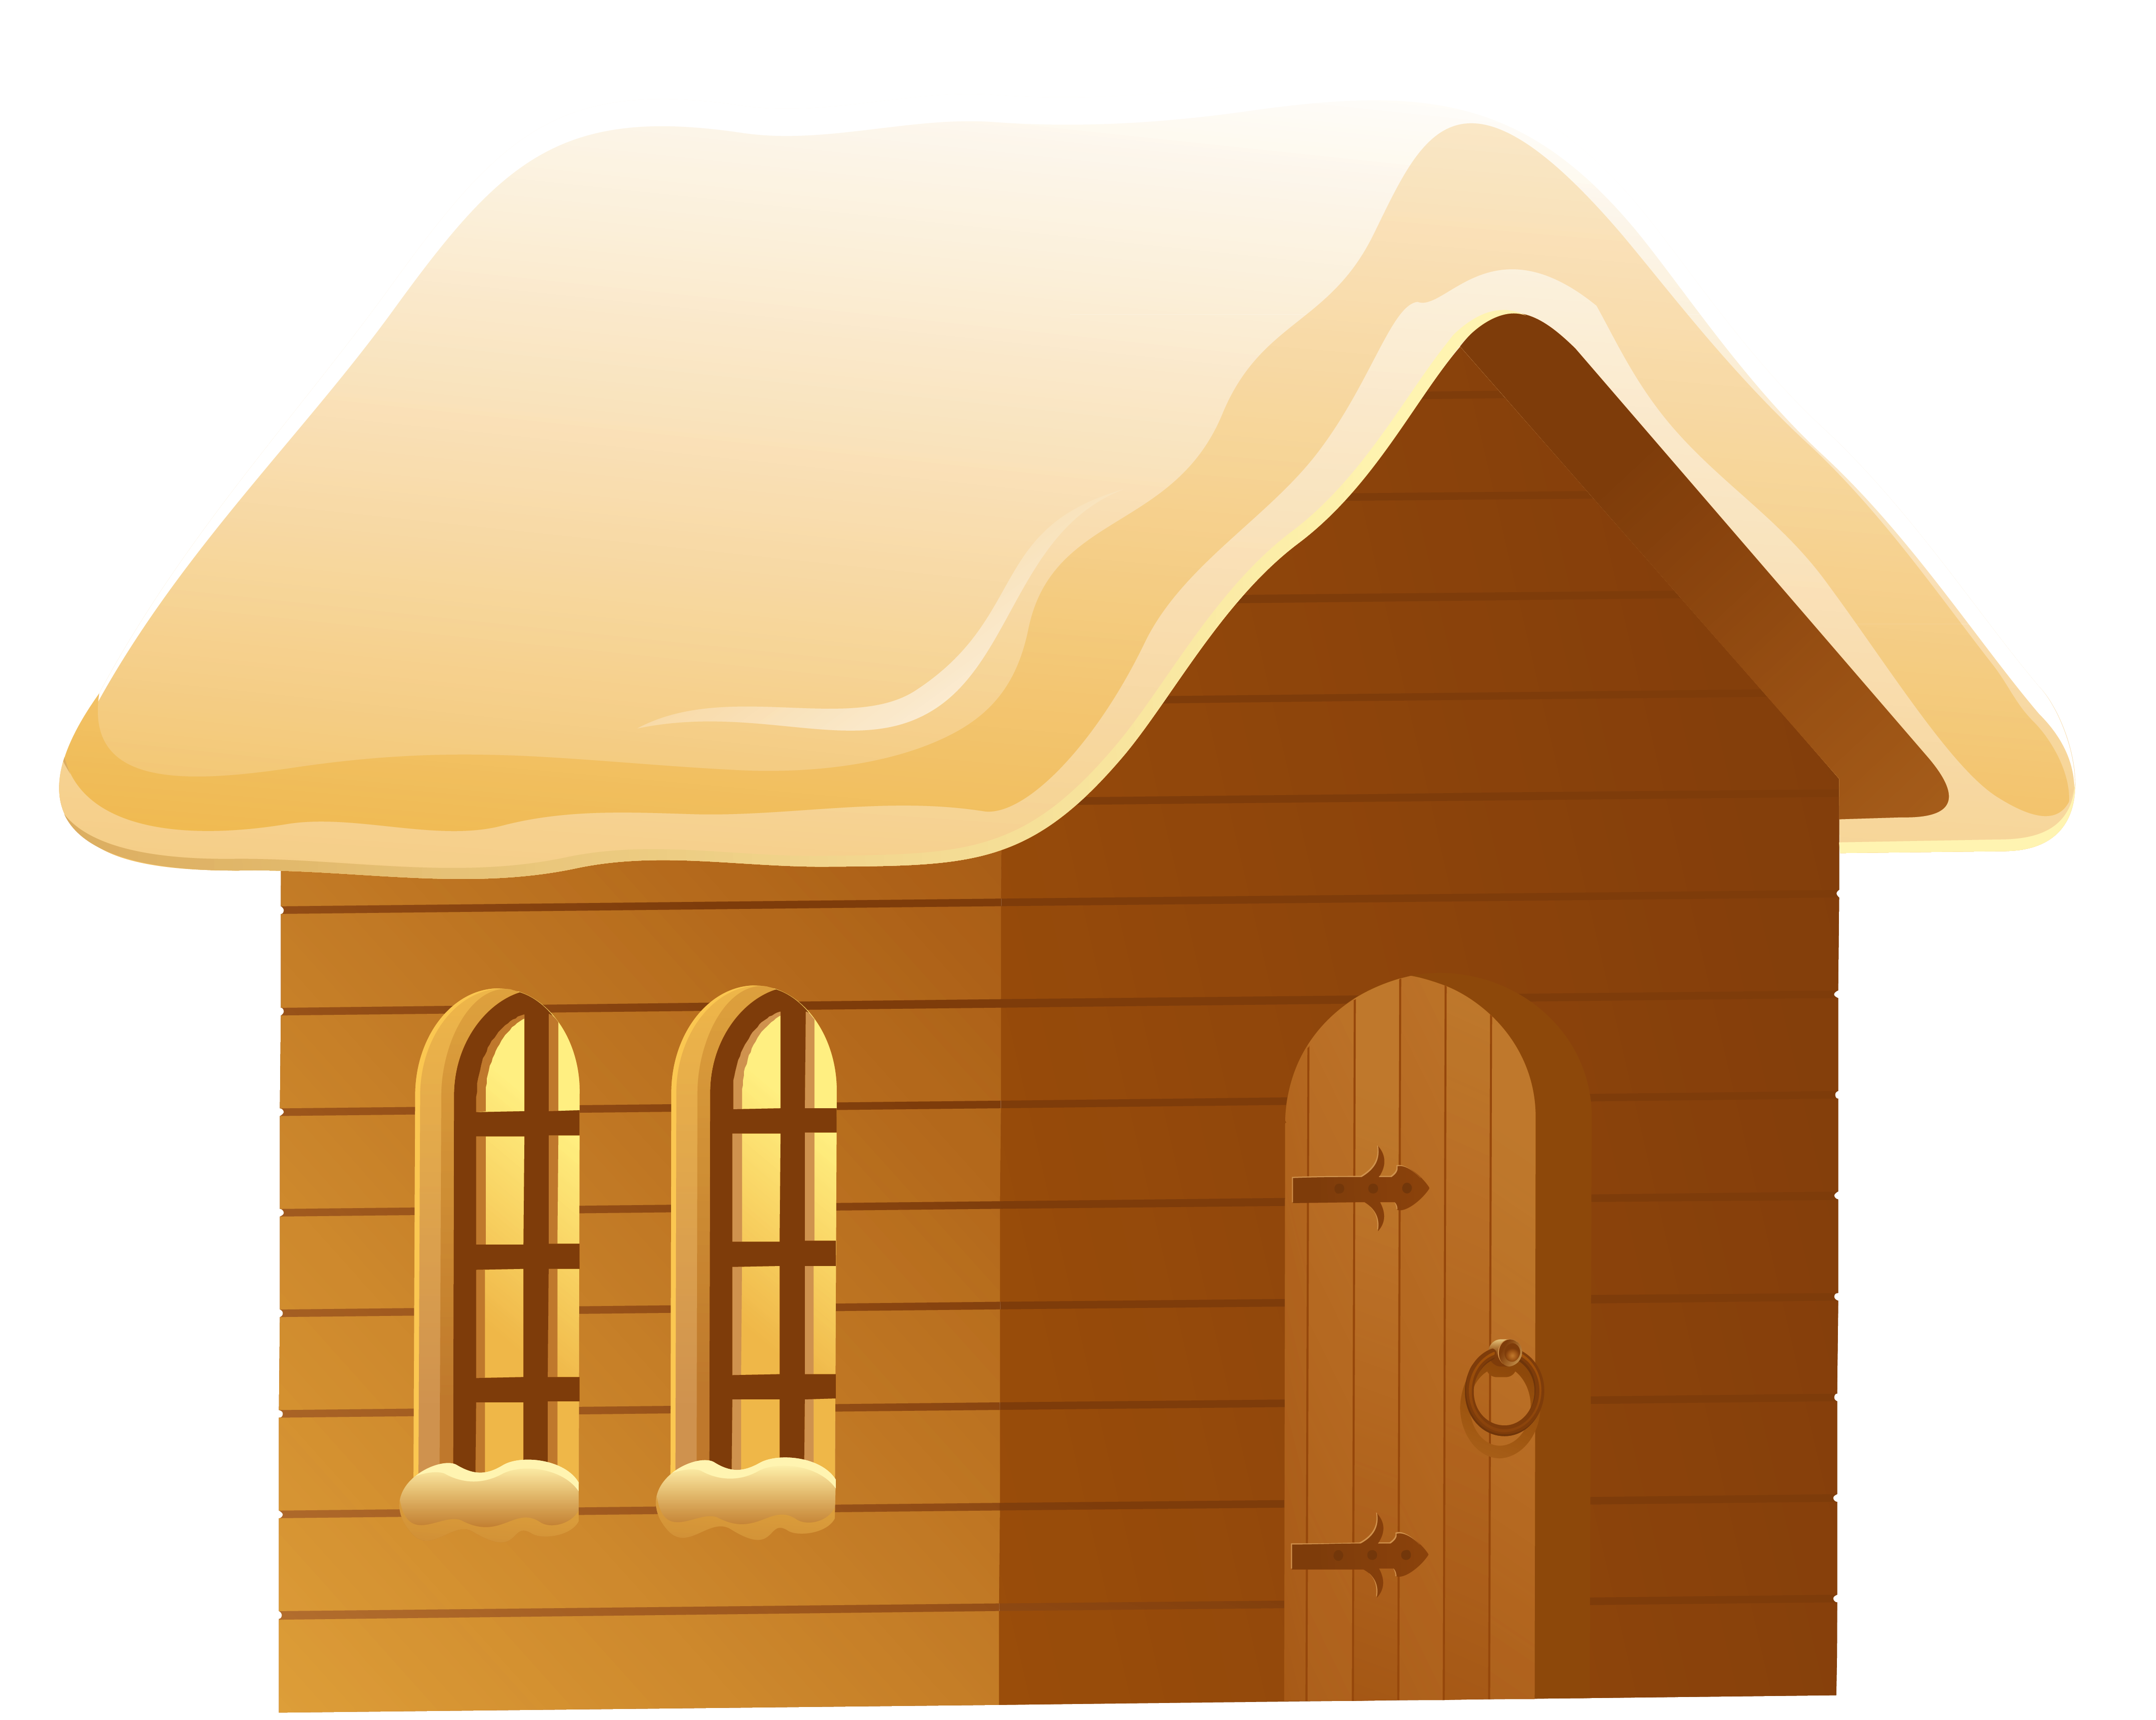 Clipart house brown. Winter snowy png picture